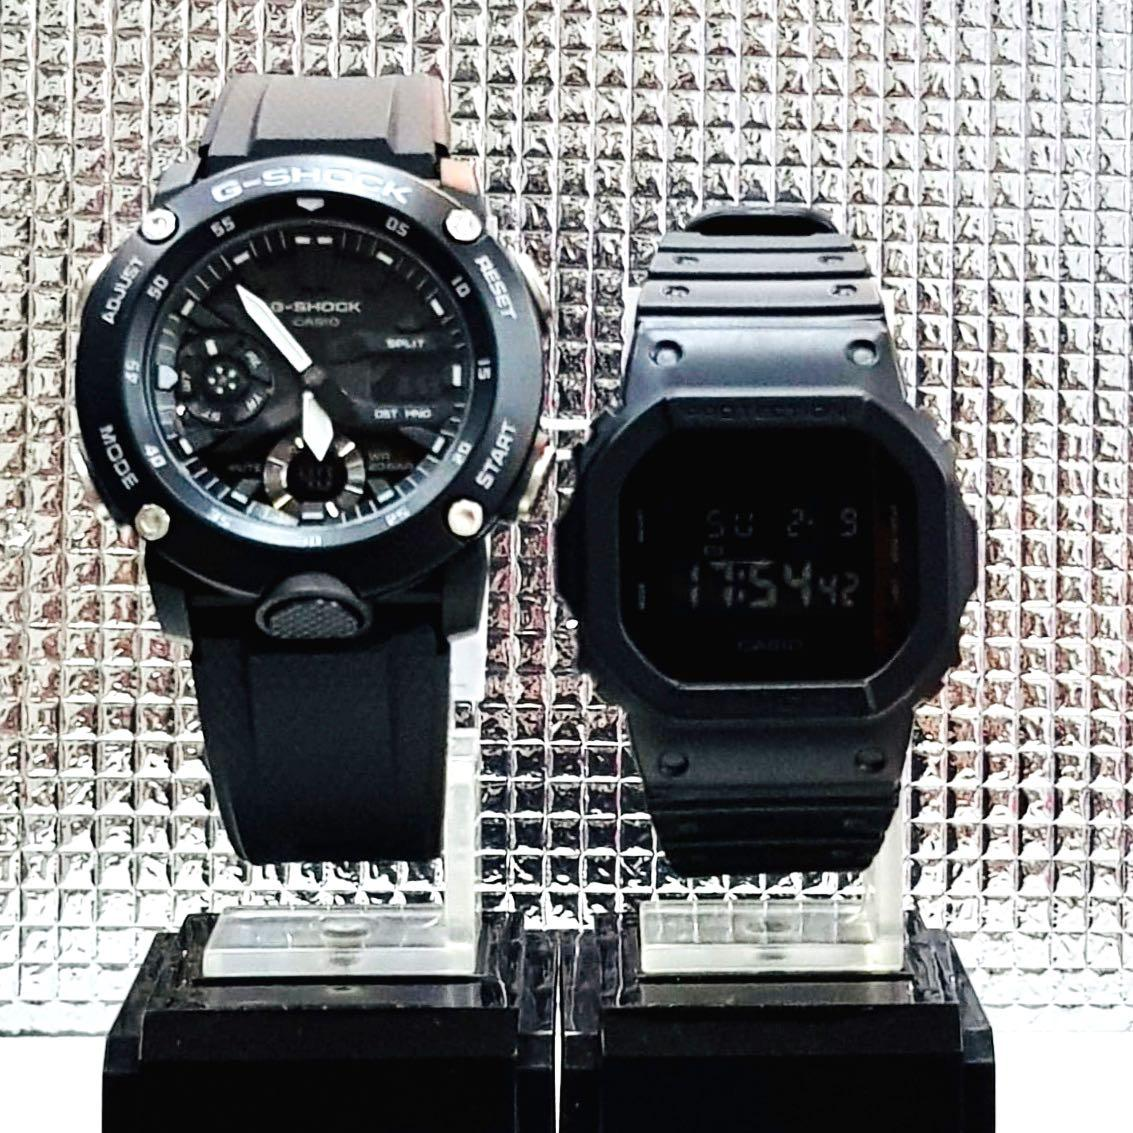 NEW🌟COUPLE💝SET : BABYG + GSHOCK UNISEX DIVER SPORTS WATCH : 100% ORIGINAL AUTHENTIC CASIO BABY-G-SHOCK : GA-2000S-1A + DW-5600BB-1